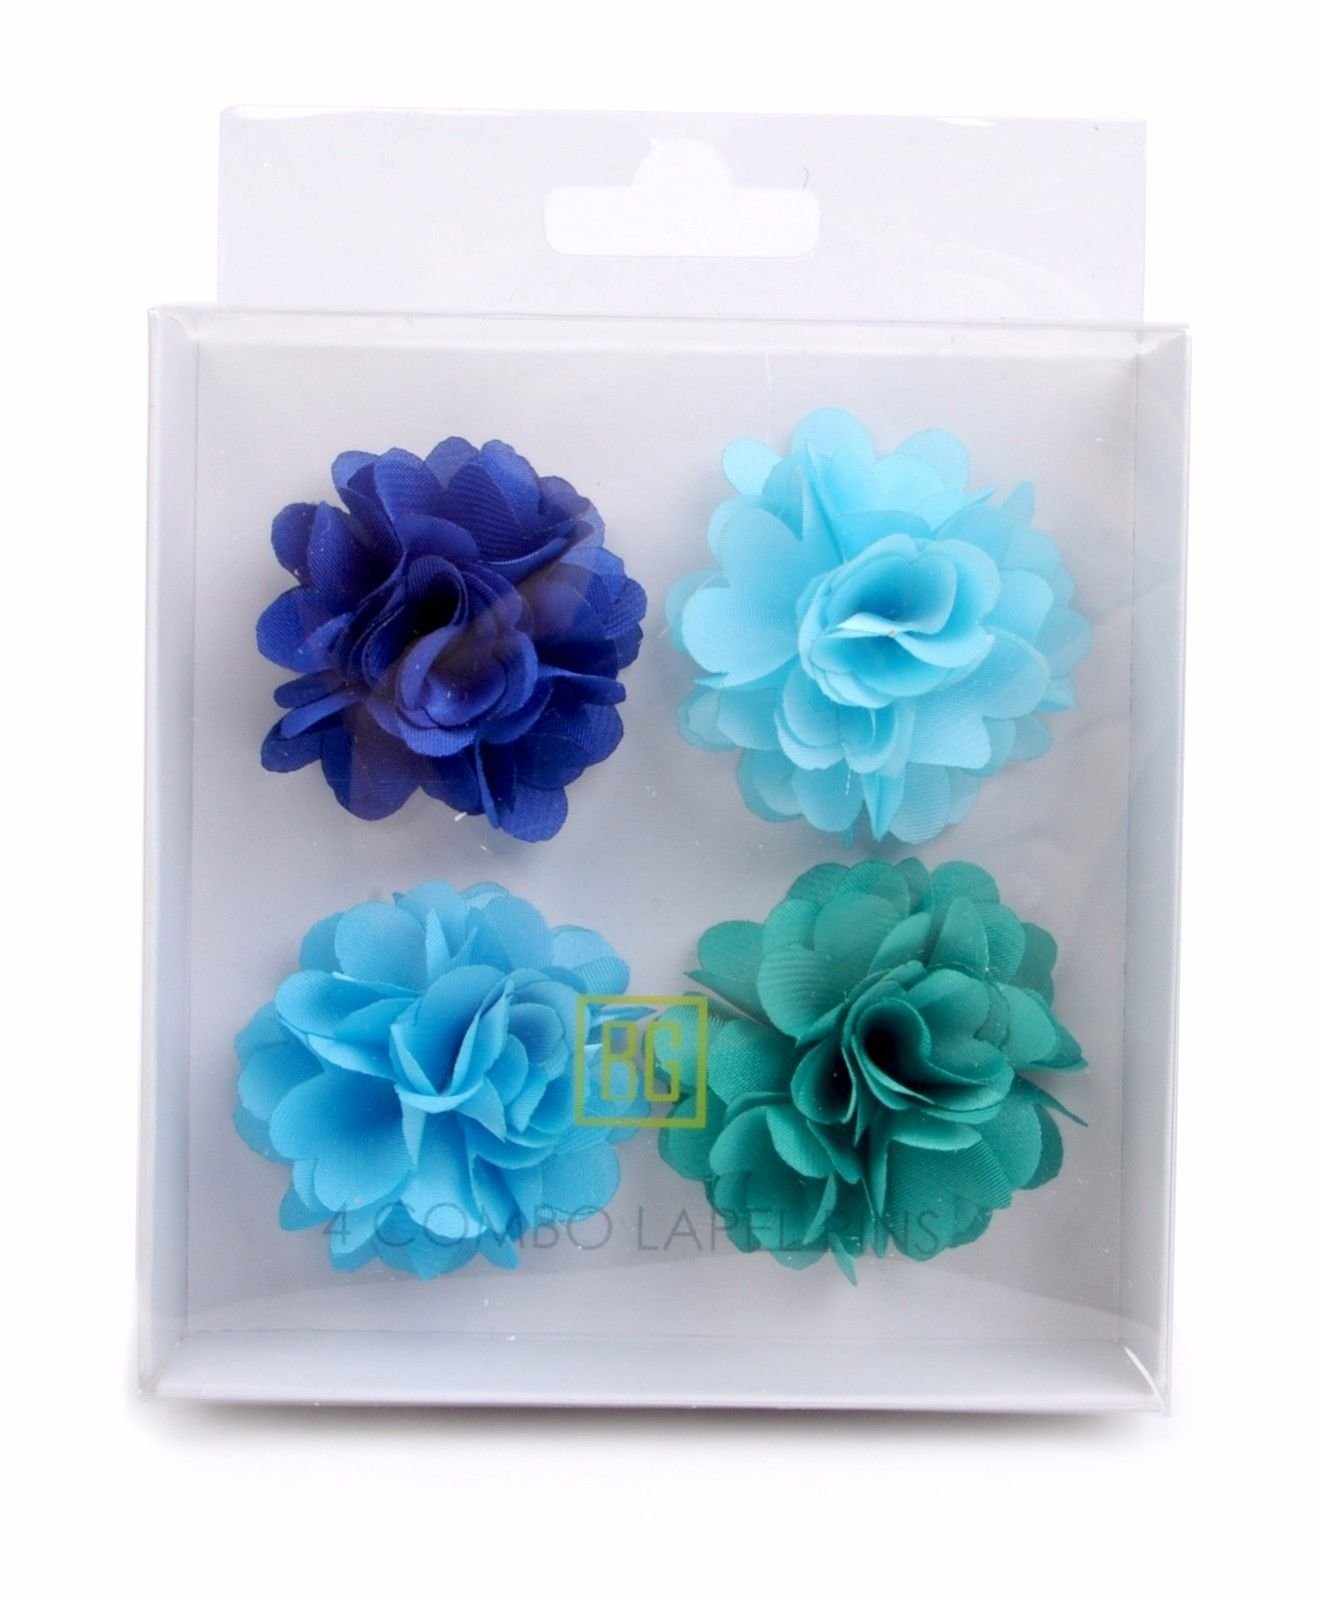 BG-Mini-Bouquet-Clutch-Back-Flower-Tuxedo-Suit-Lapel-Pins-Boutonniere-4-Pack-Set thumbnail 27